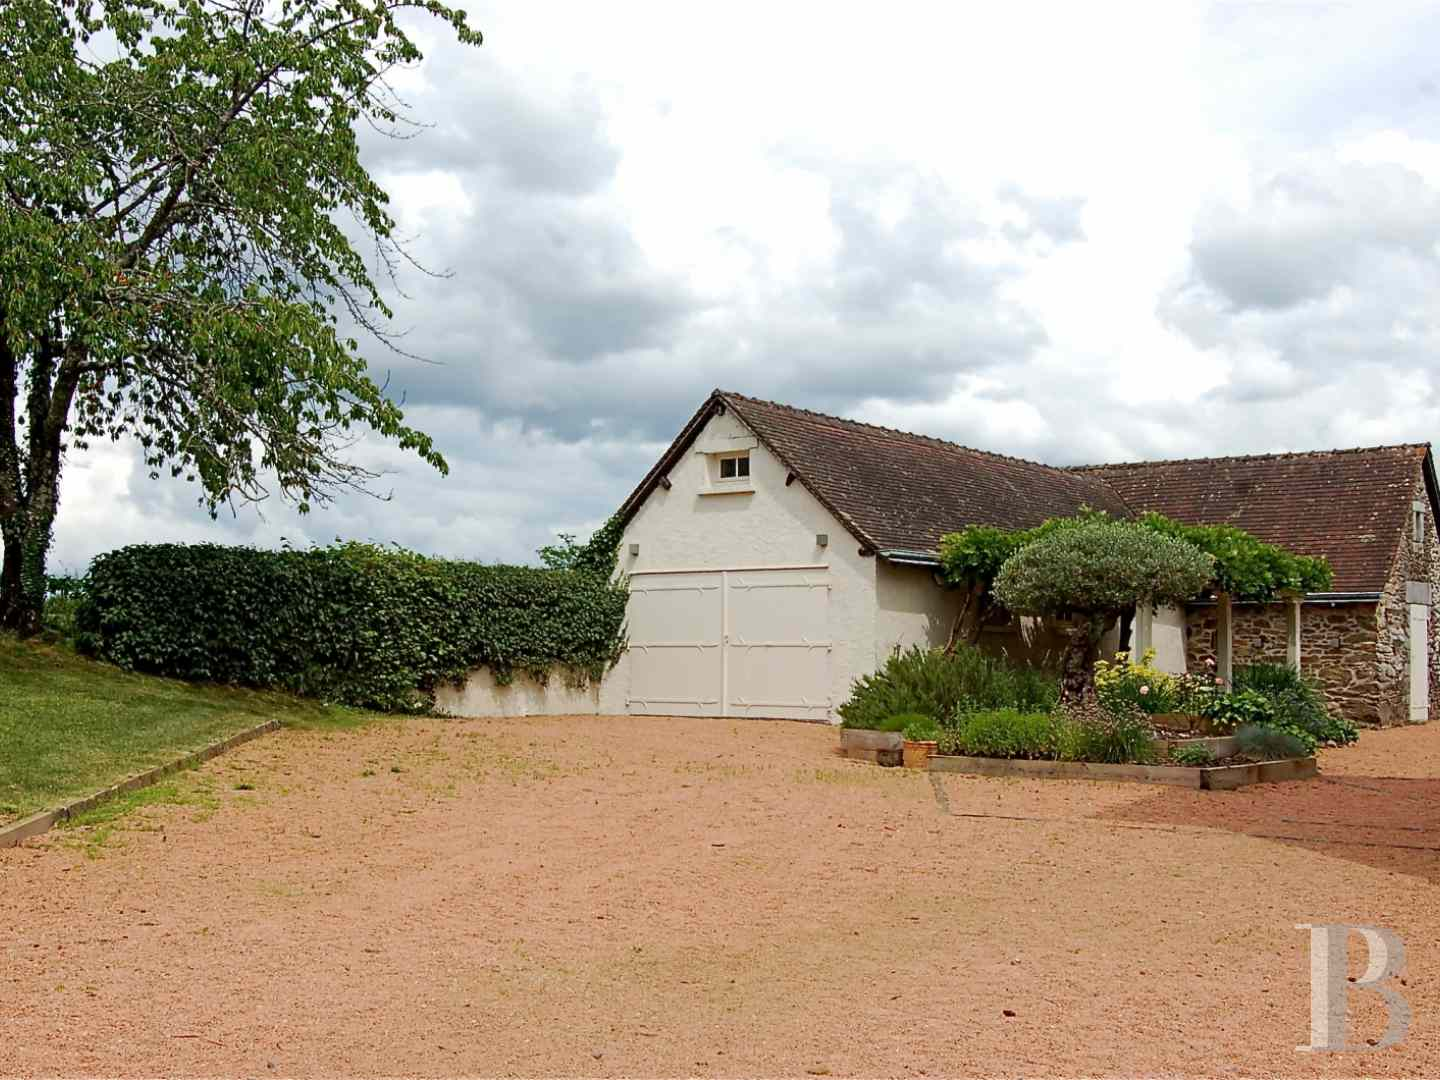 property for sale France limousin free lands - 13 zoom